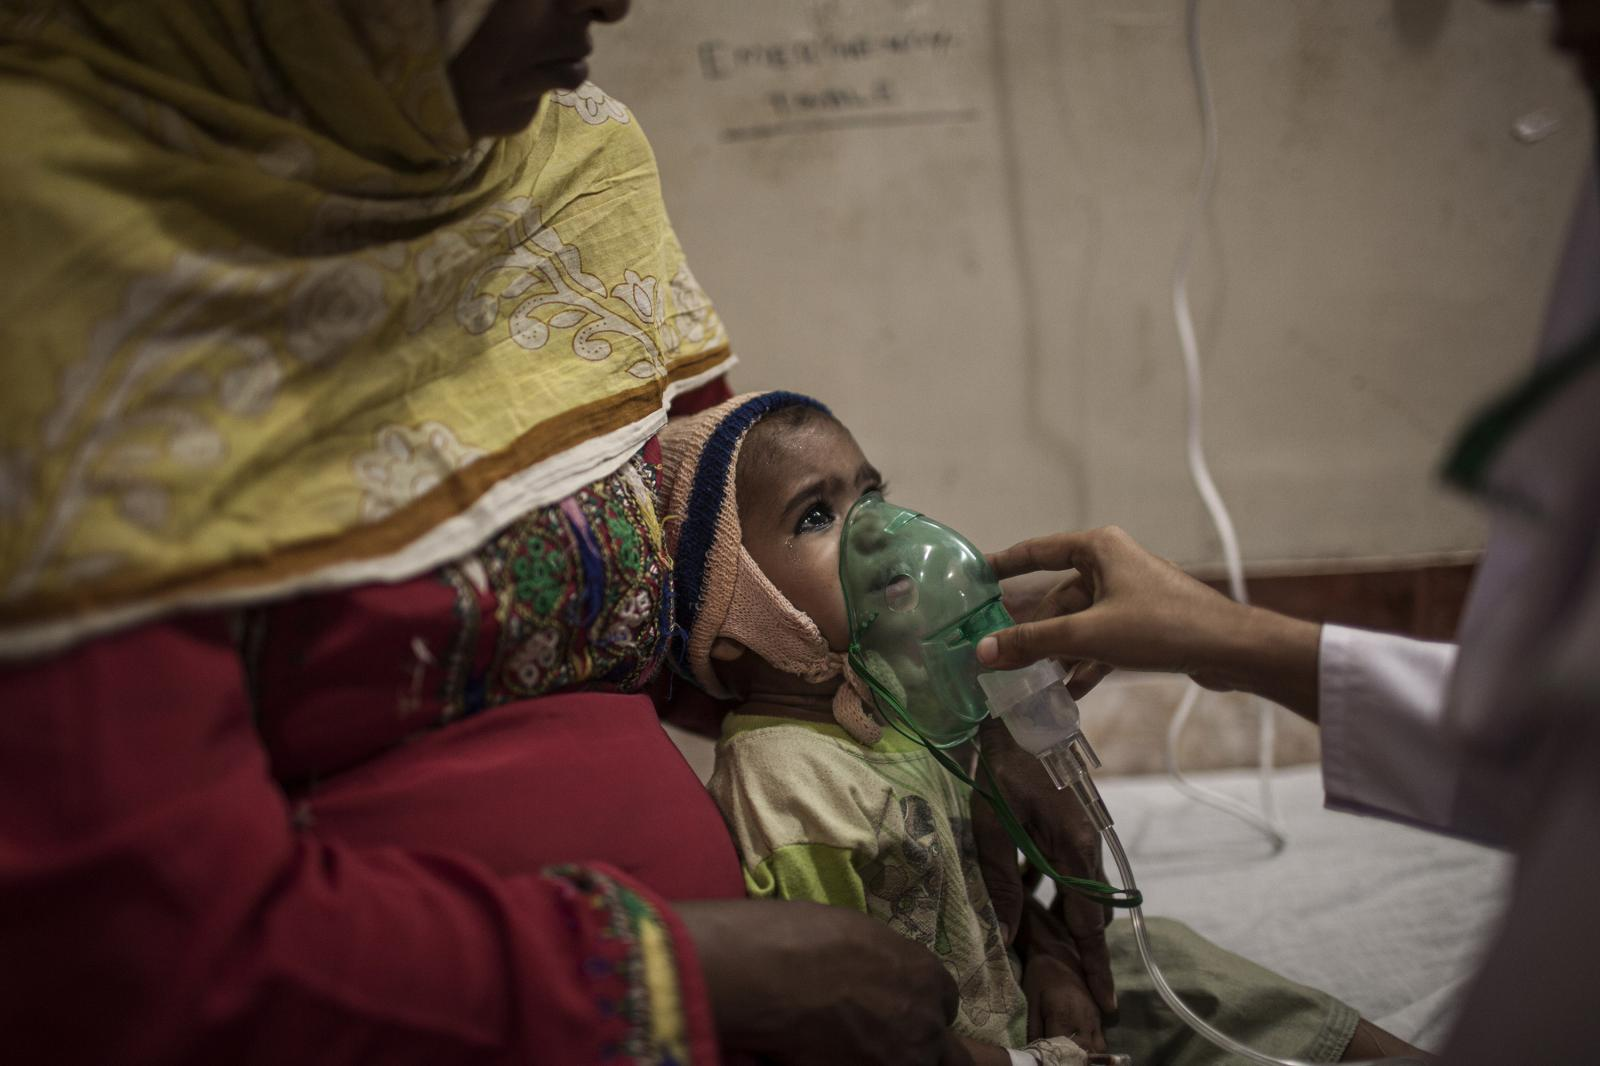 A child gets respiratory aid at the Functional Nutrition Center in Liaqat University of Medical Health Sciences in Hyderabad. 30% of children are affected by malnutrition. In all, it forms to increase the risk of disease and early death. Diego Ibarra Sánchez for WHO